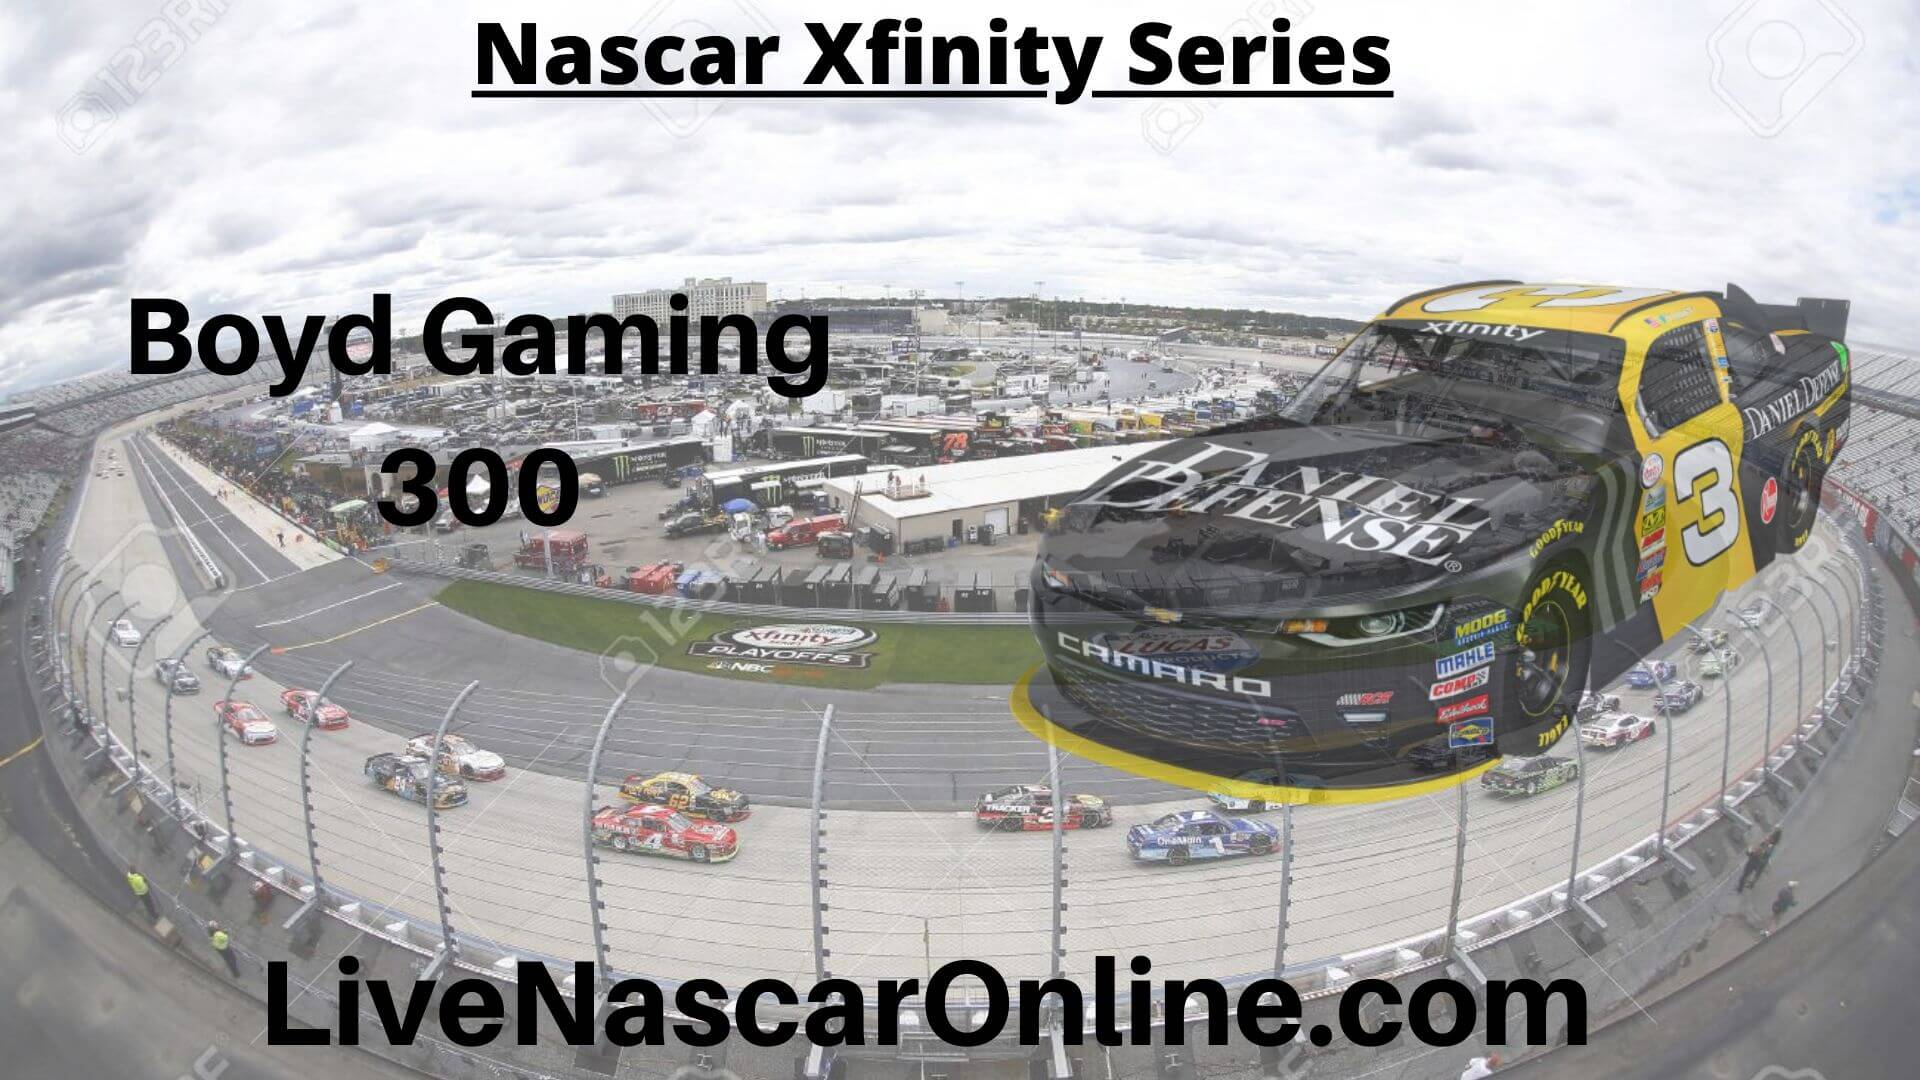 watch-boyd-gaming-300-nascar-xfinity-live